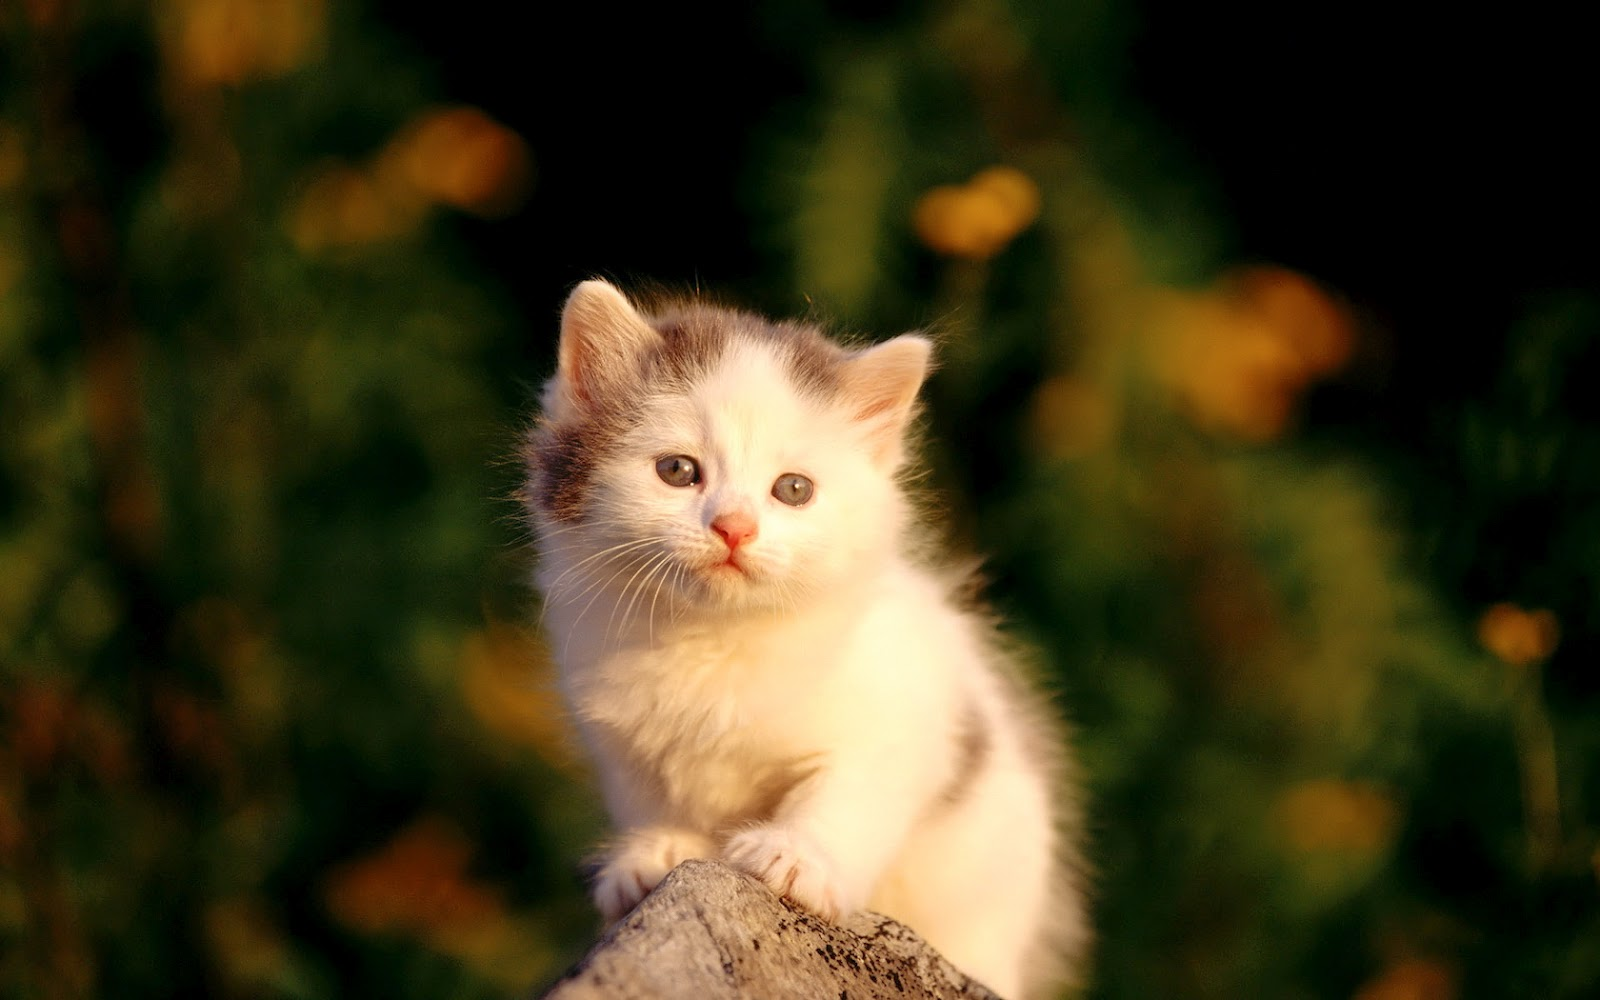 Wallpapers Of Cute Cats And Kittens Most Interseting Cutest Cat Wallpapers